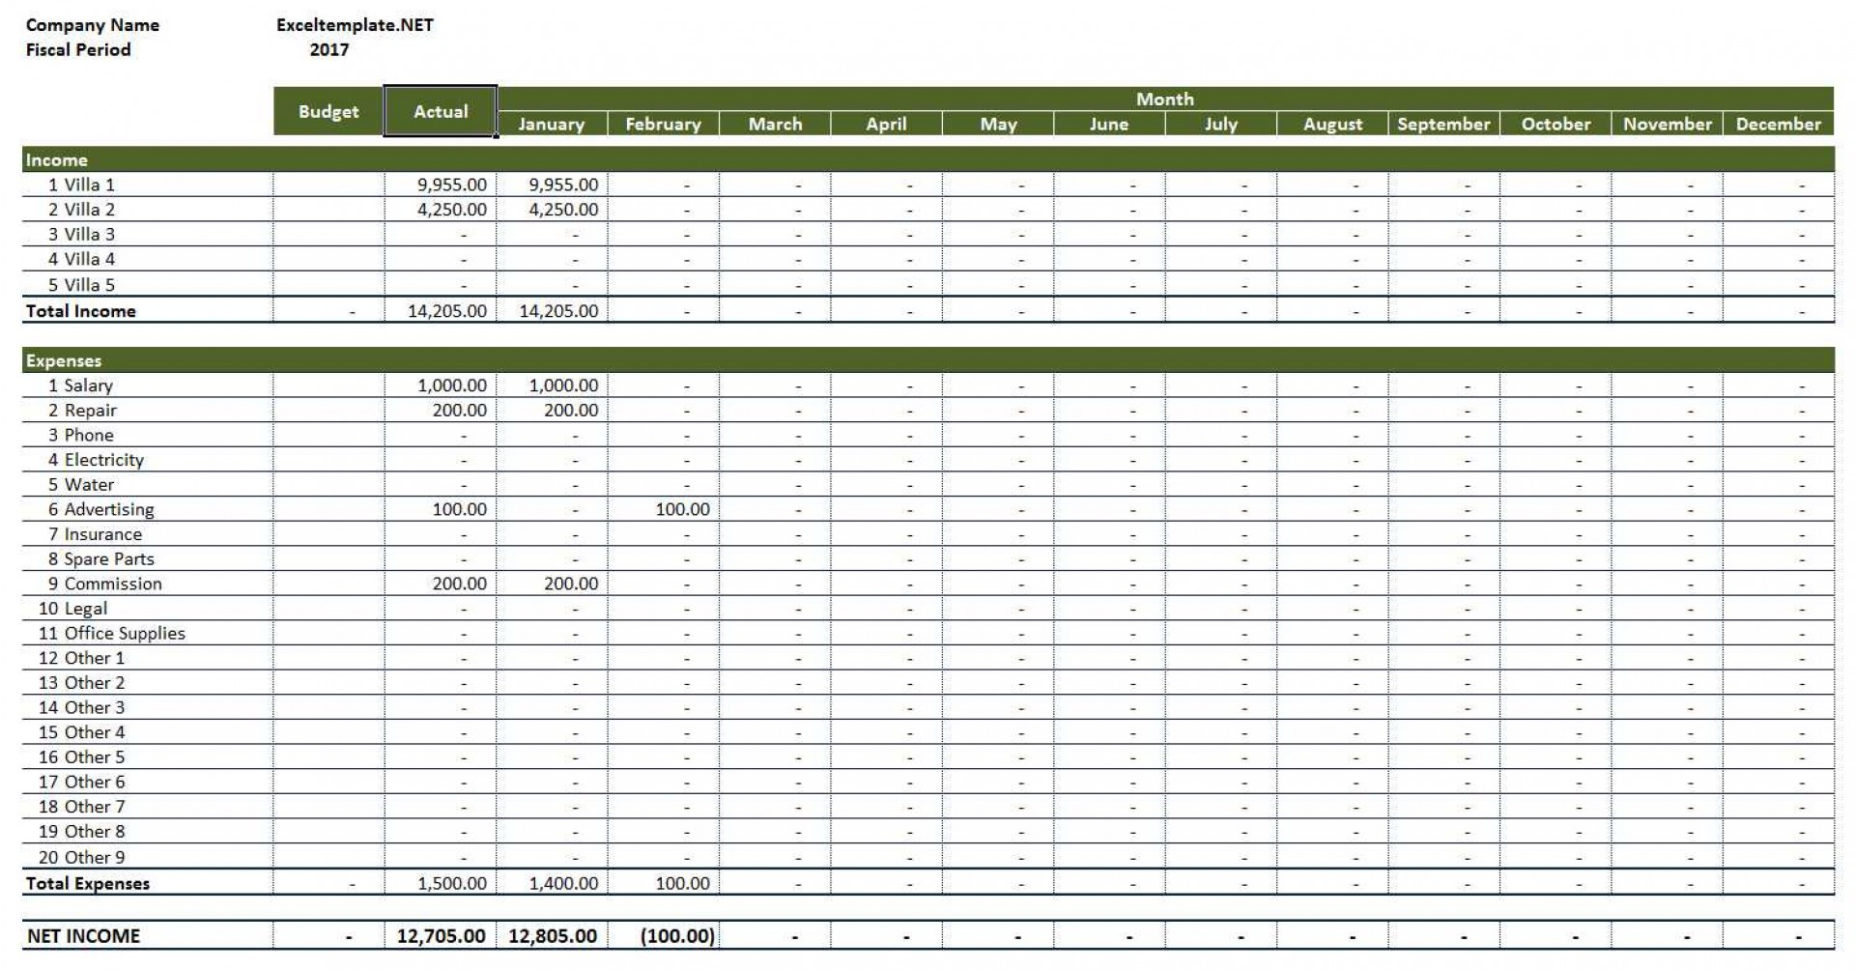 Excel Spreadsheet Income And Expenses Throughout 008 Template Ideas Income Expenses Spreadsheet Expense Manager Excel